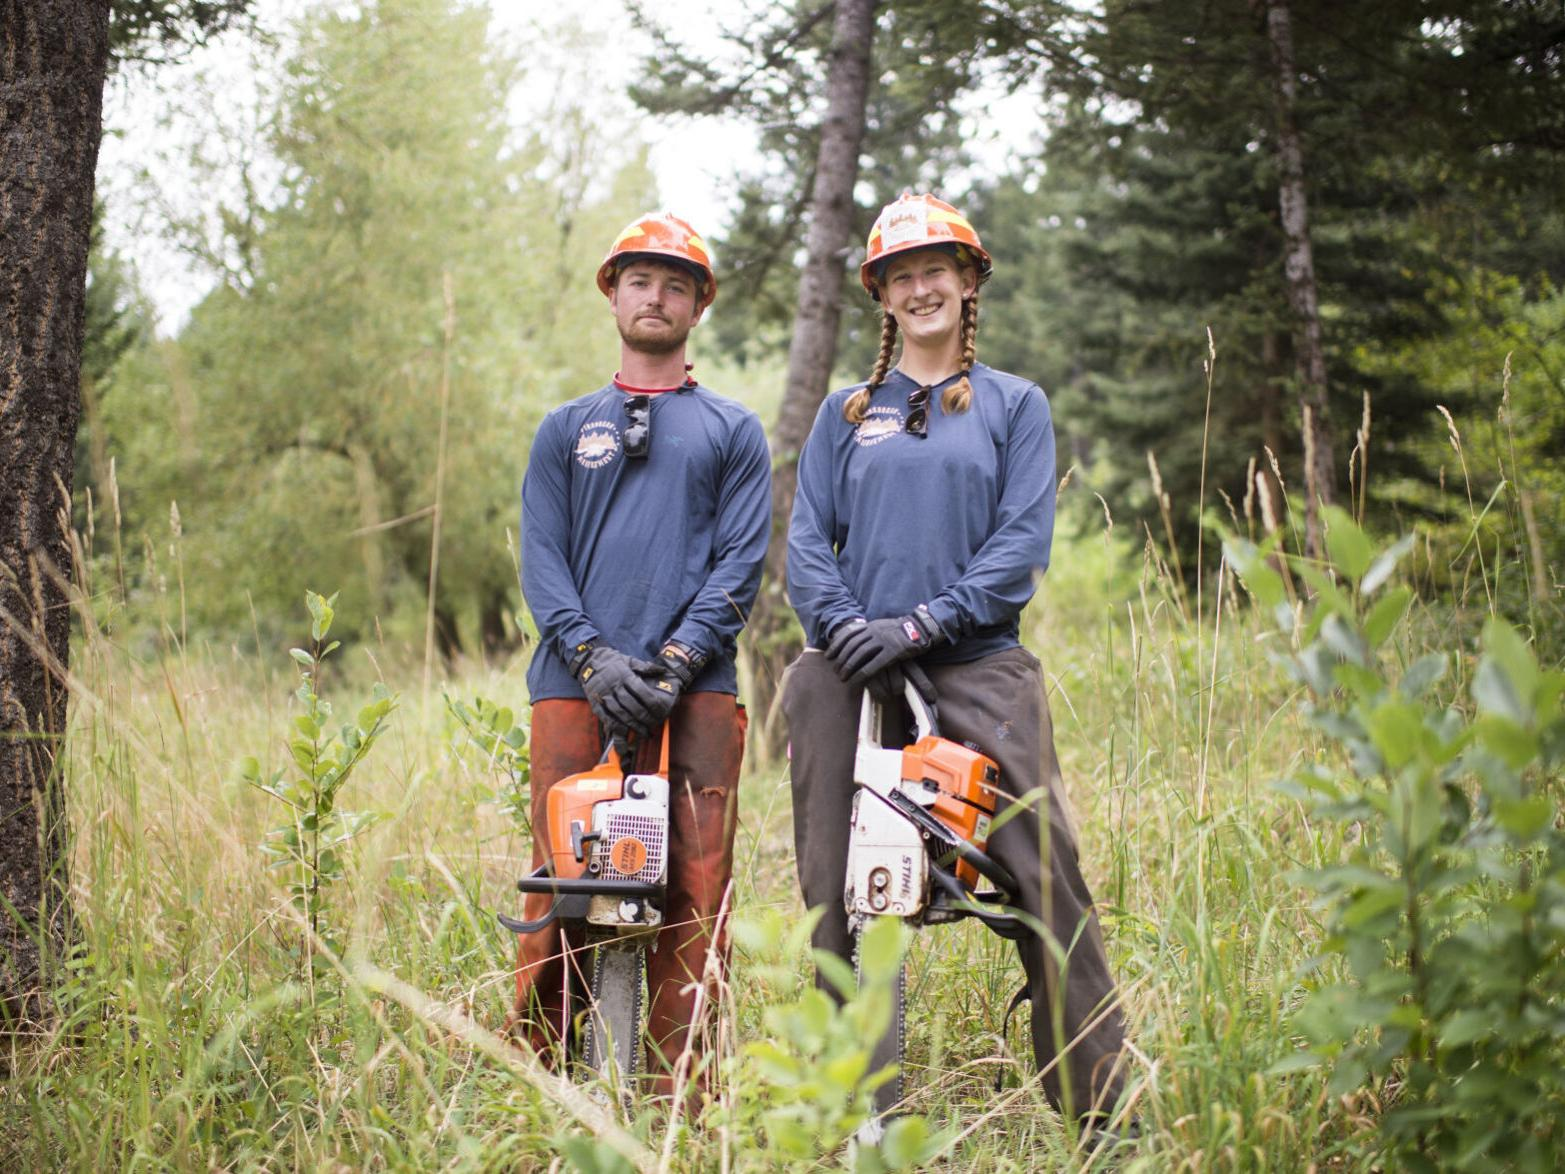 Former firefighters start company to reduce wildfire risk